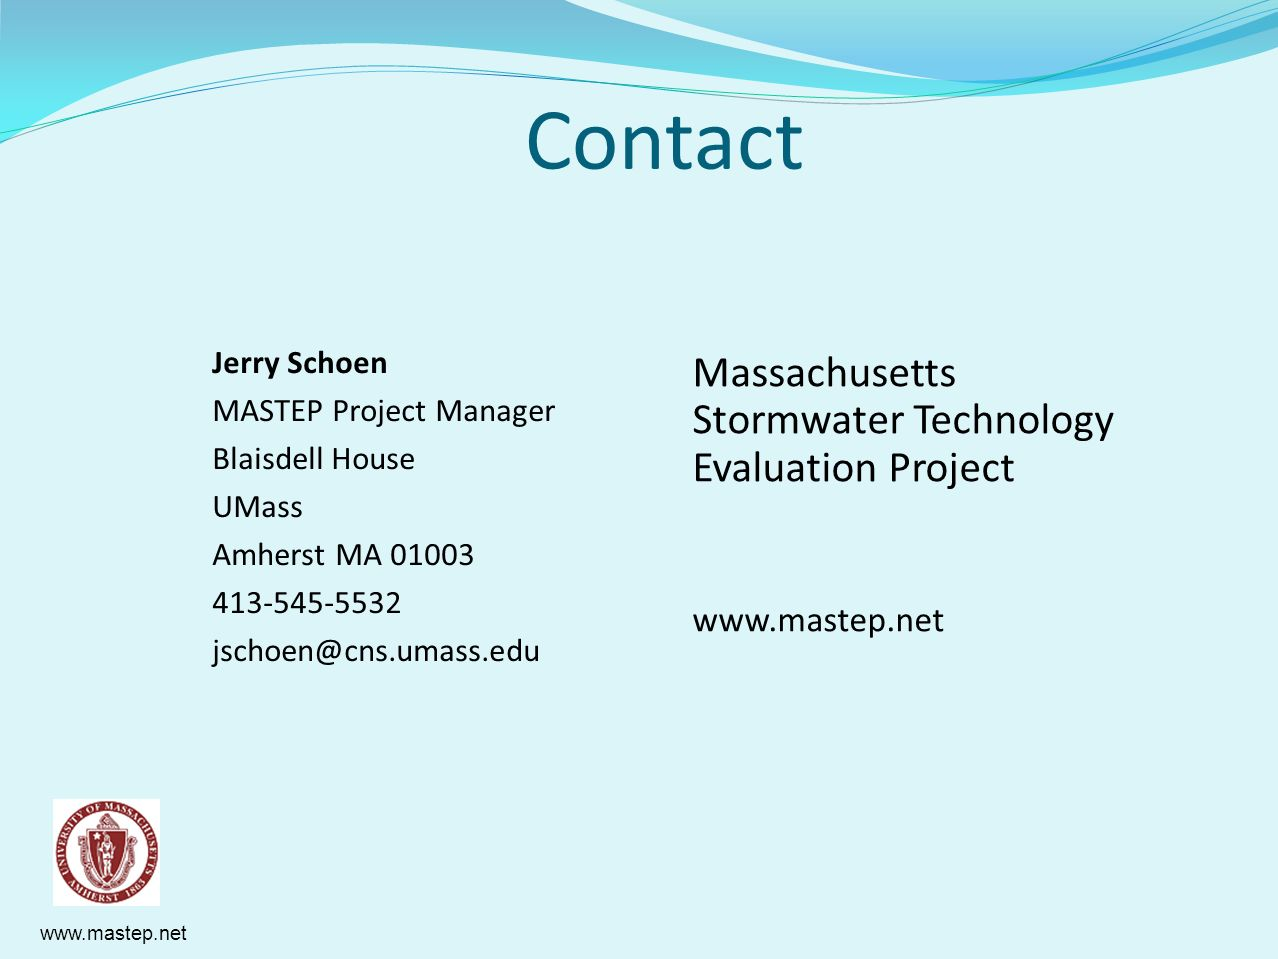 Contact Massachusetts Stormwater Technology Evaluation Project